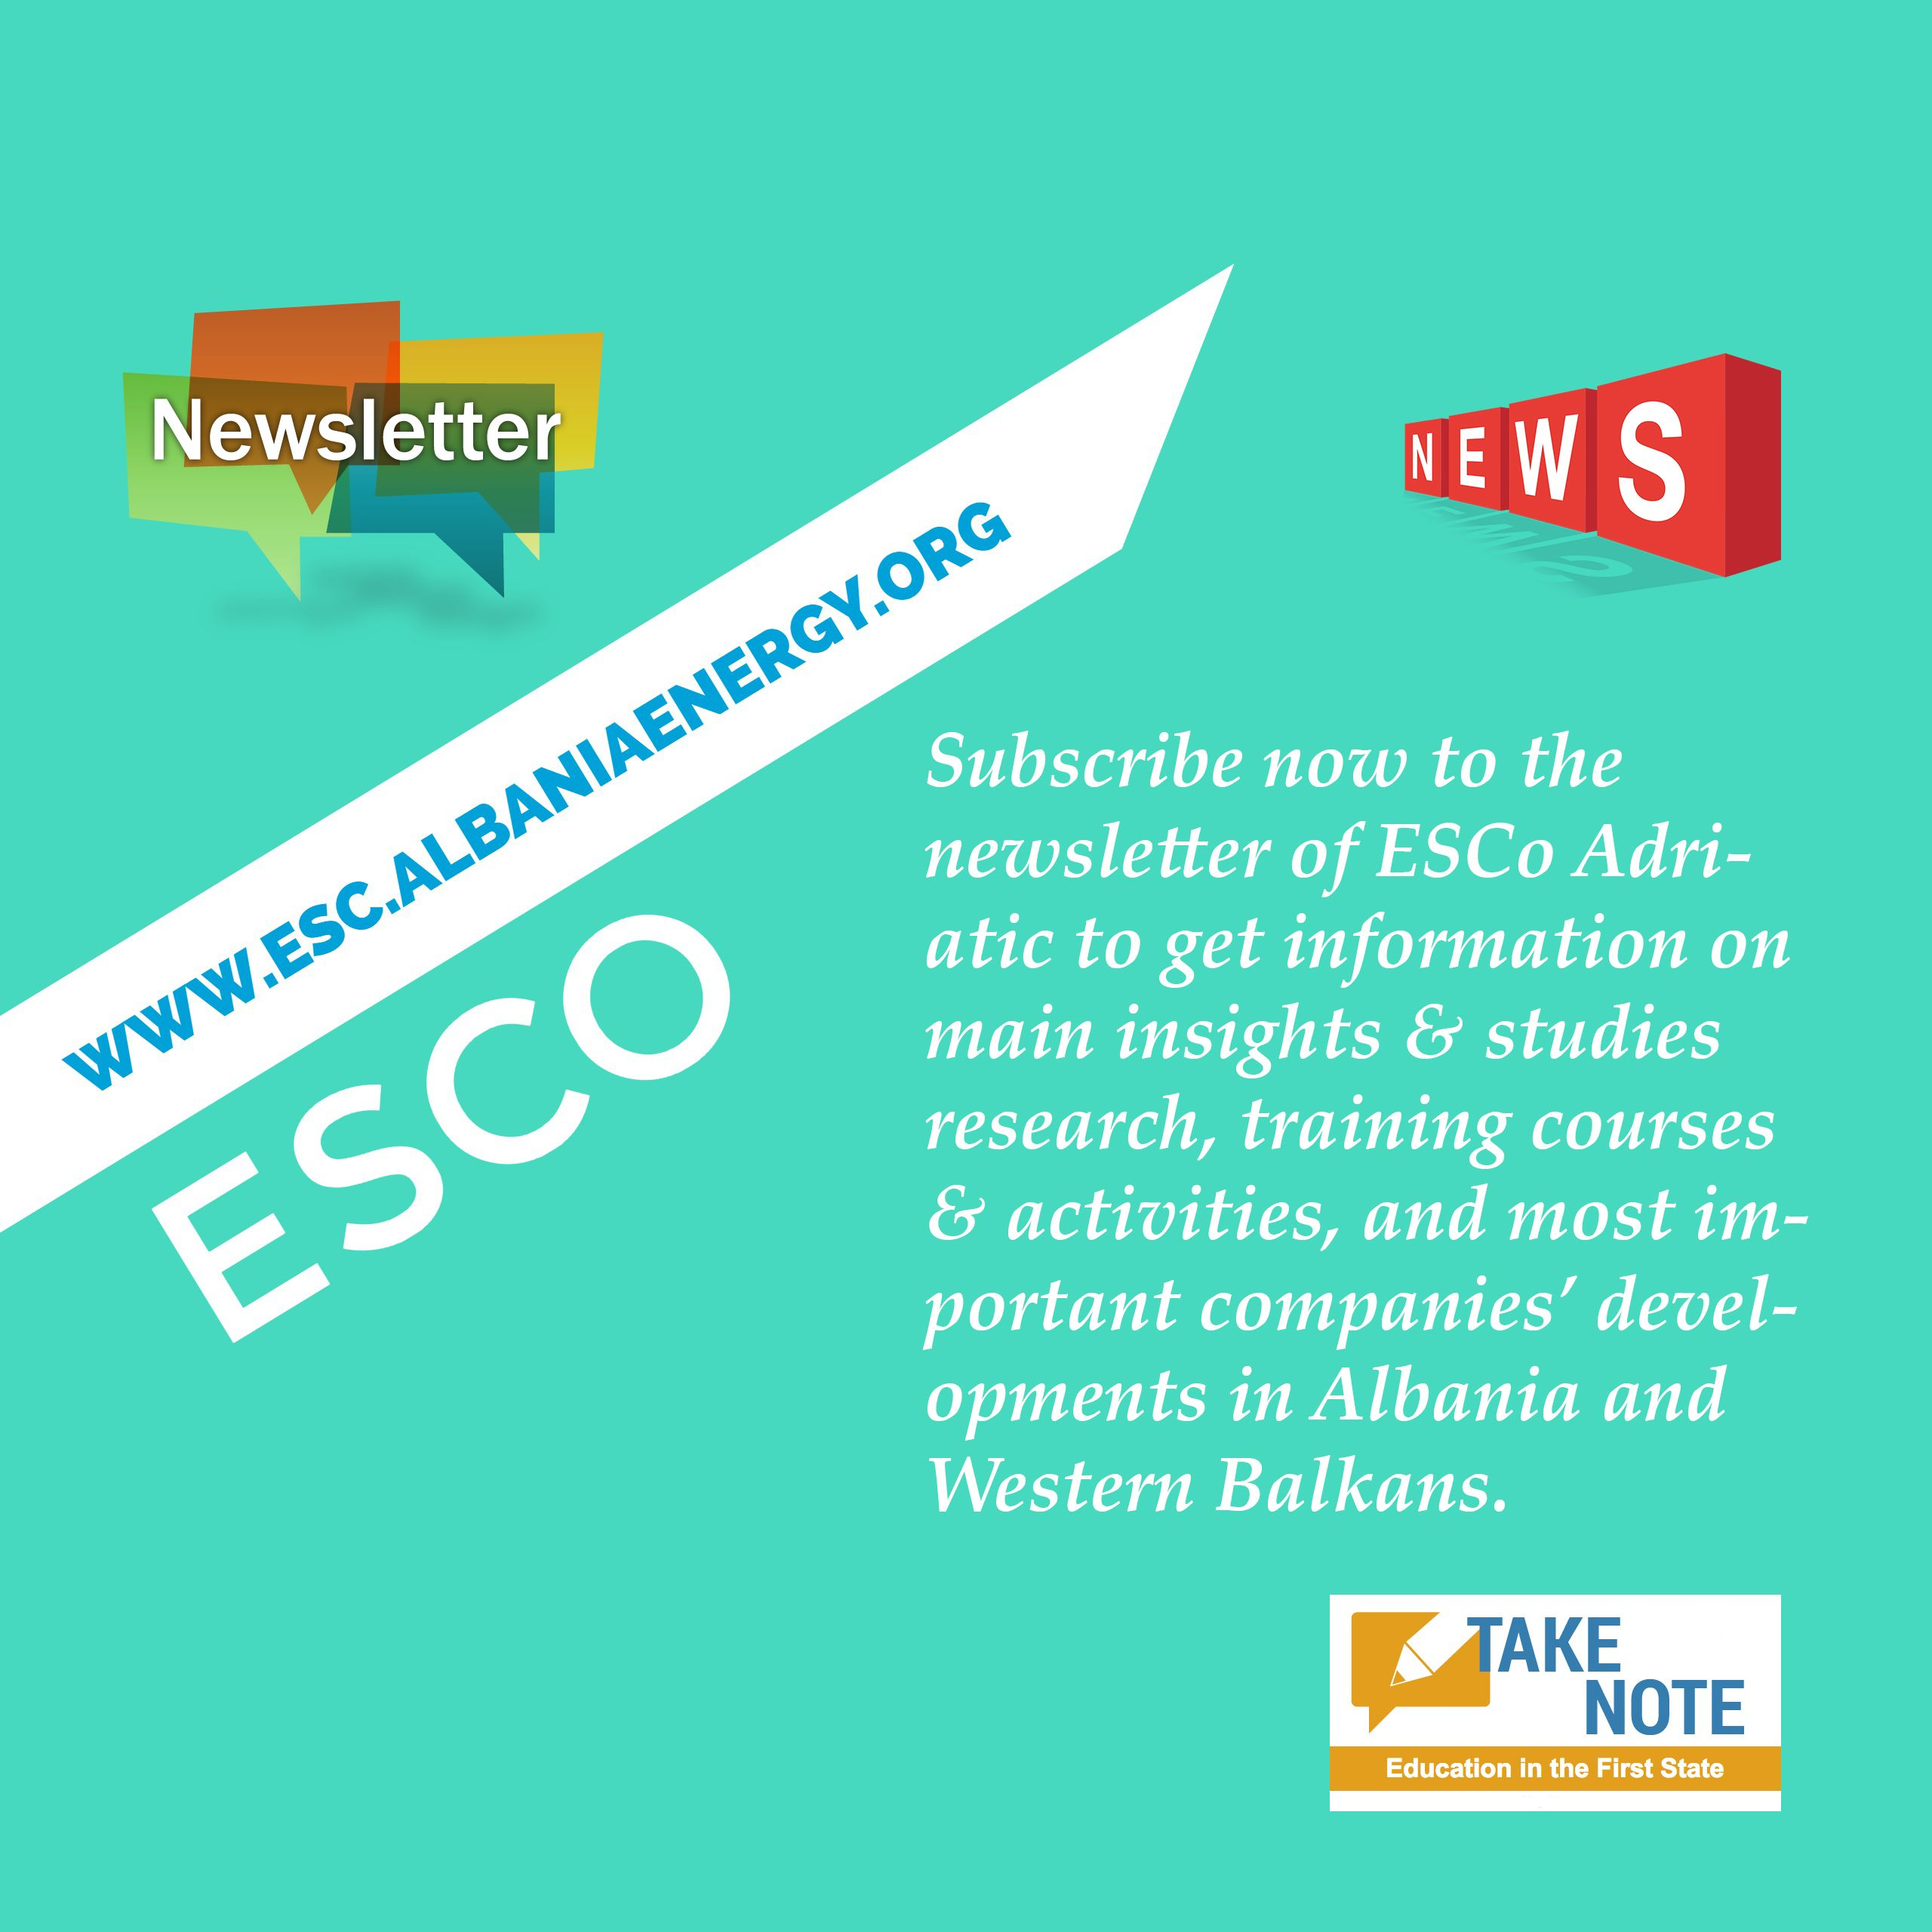 Newsletter Want to get information and insights on the main news and ...